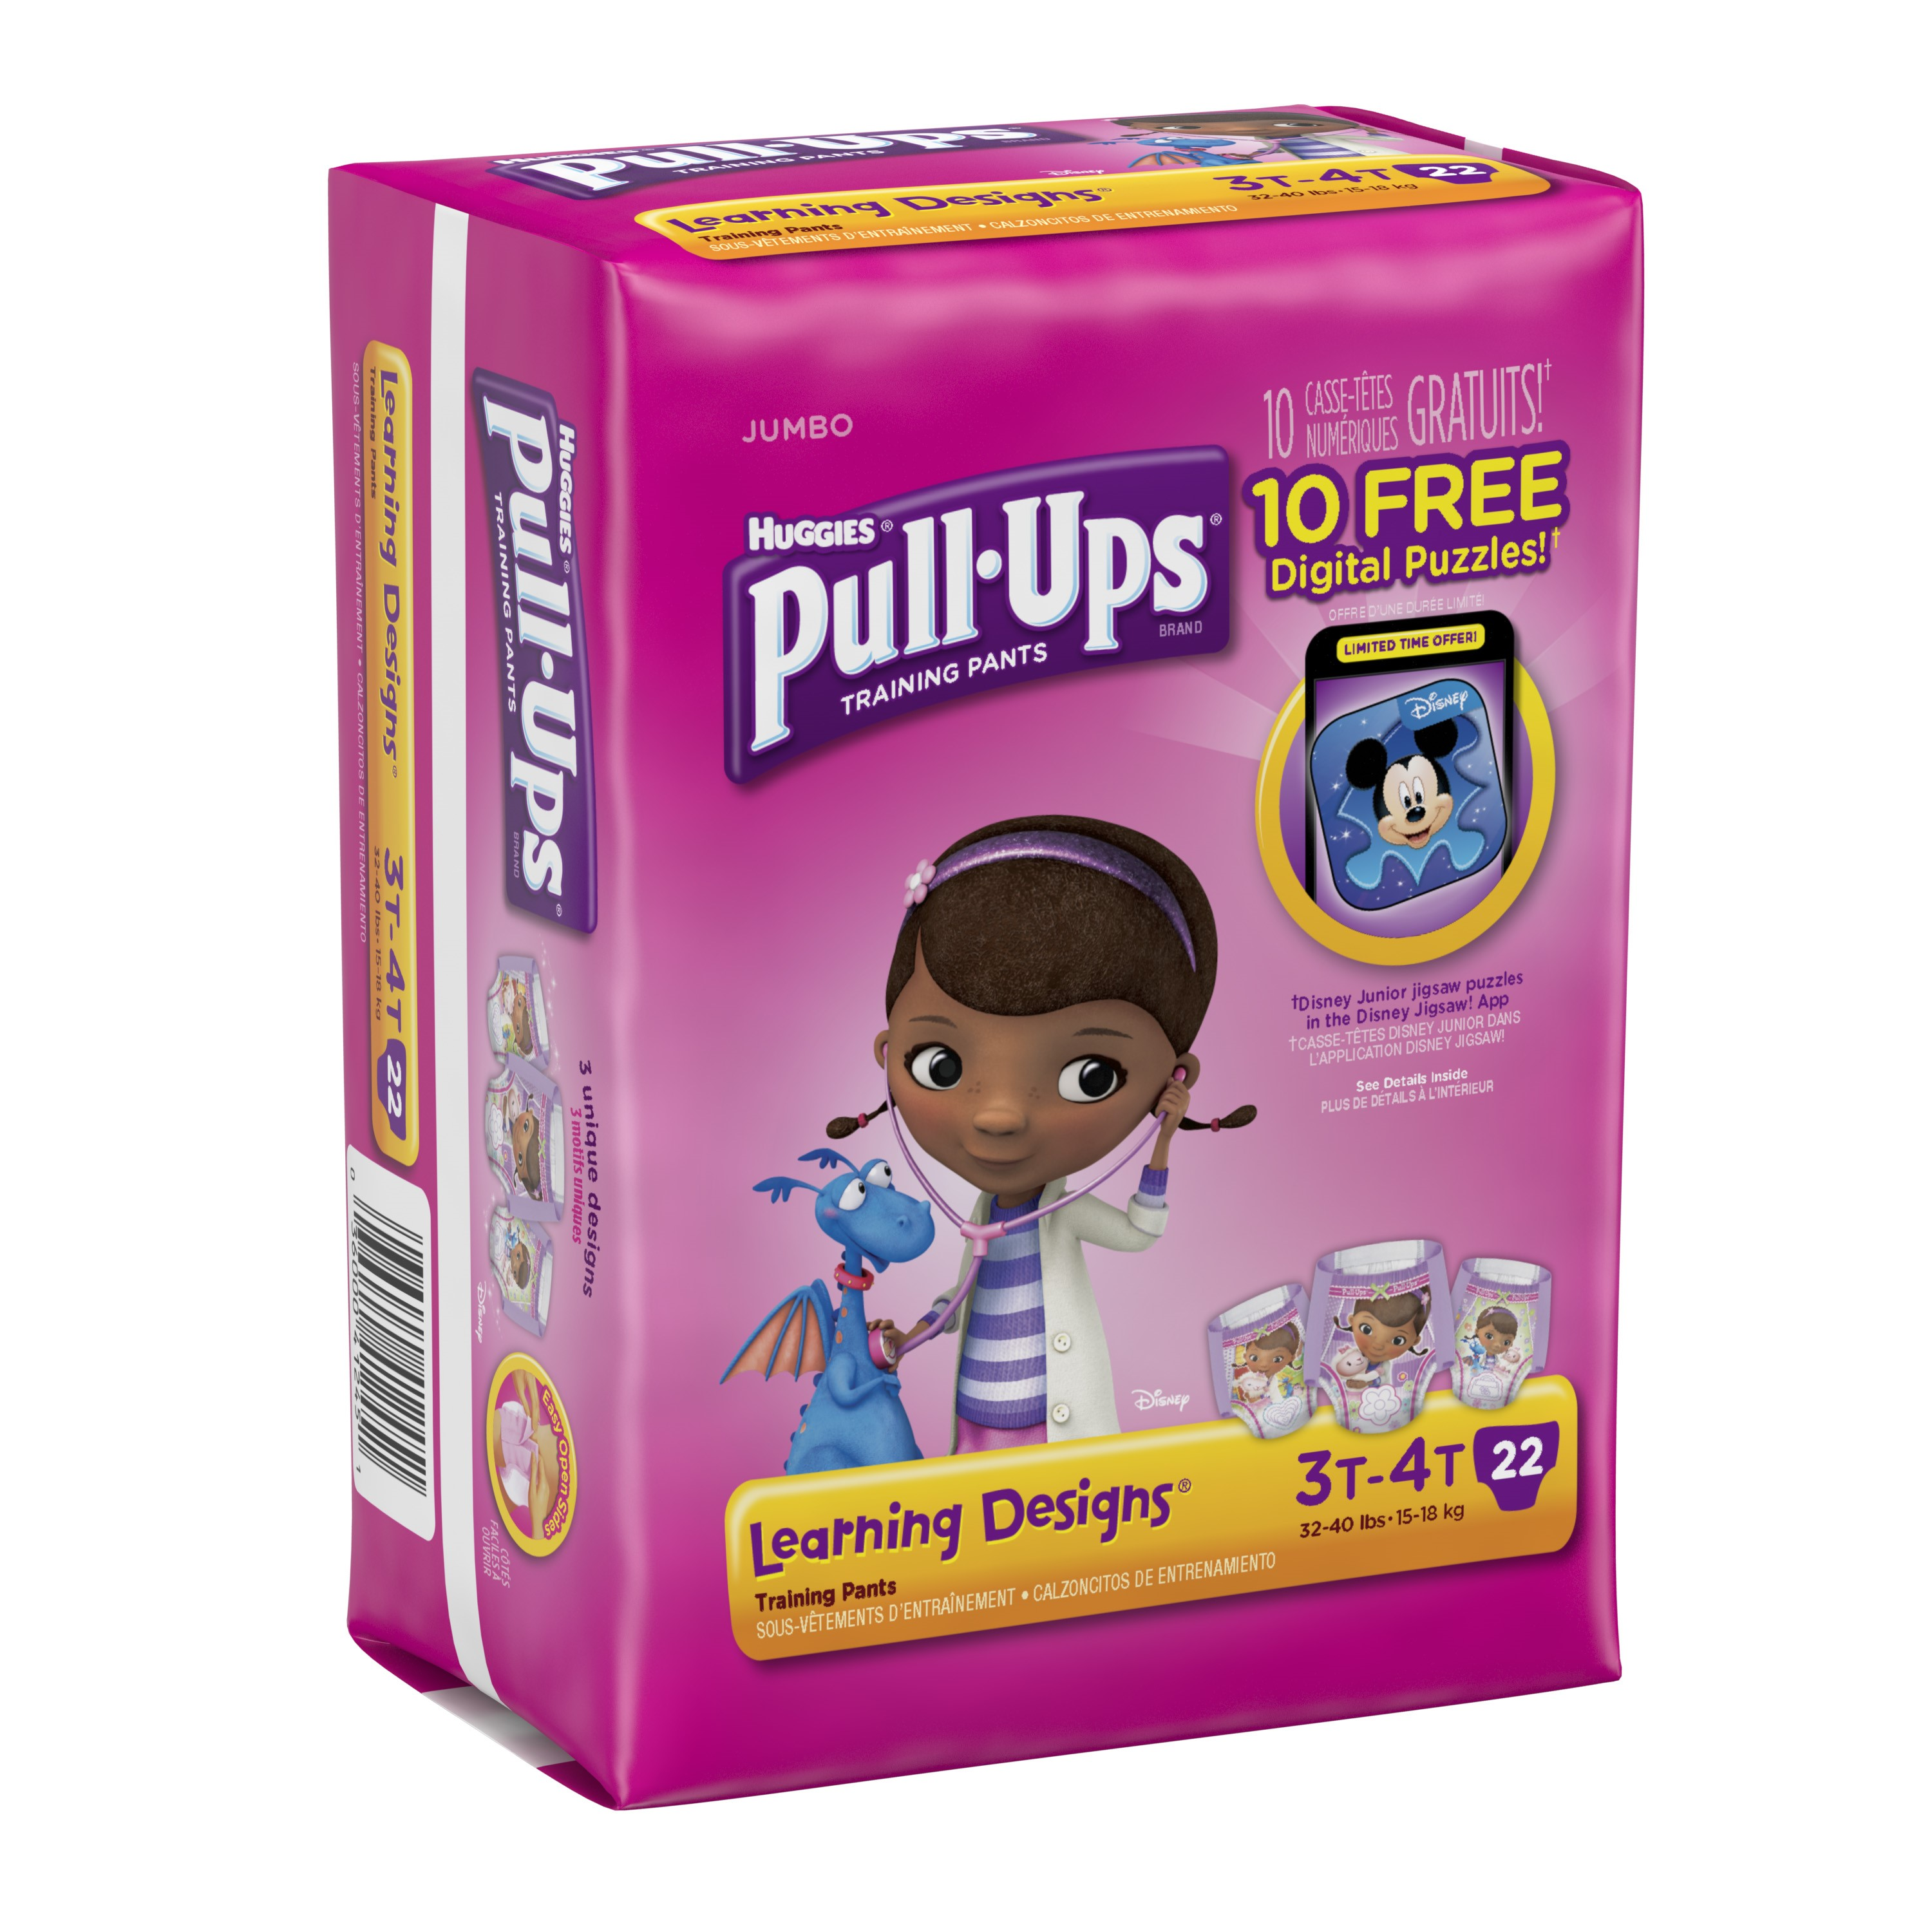 HUGGIES Pull-Ups Girls' Training Pants with Learning Designs, Jumbo Pack,